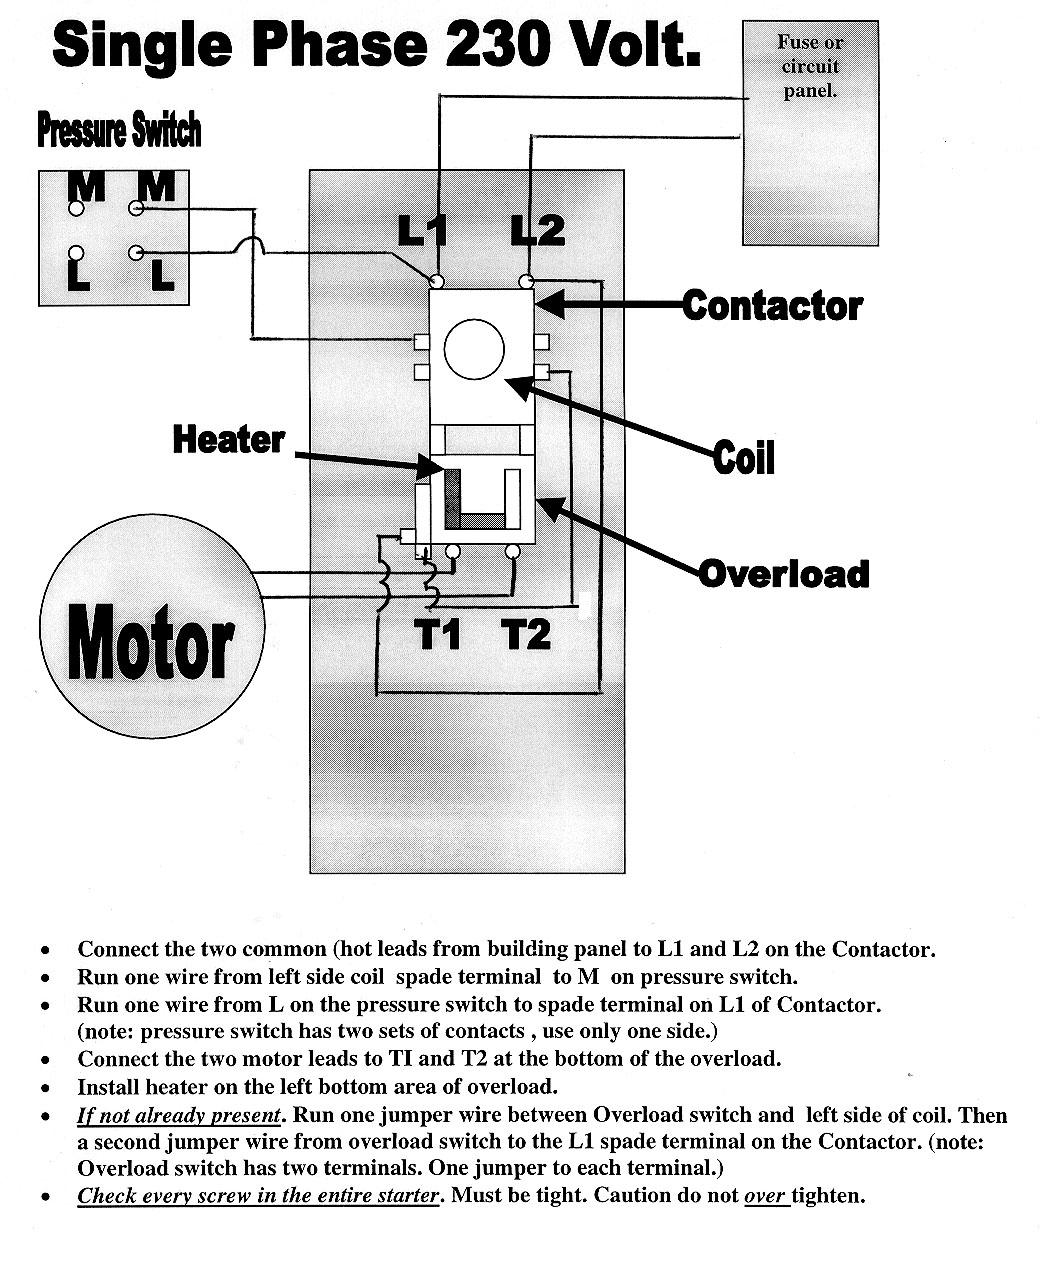 1 phase motor starter wiring diagram Download-Fancy Electric Motor Wiring Diagram Single Phase 47 About Remodel With Three Weg 3 For Motors 19-r